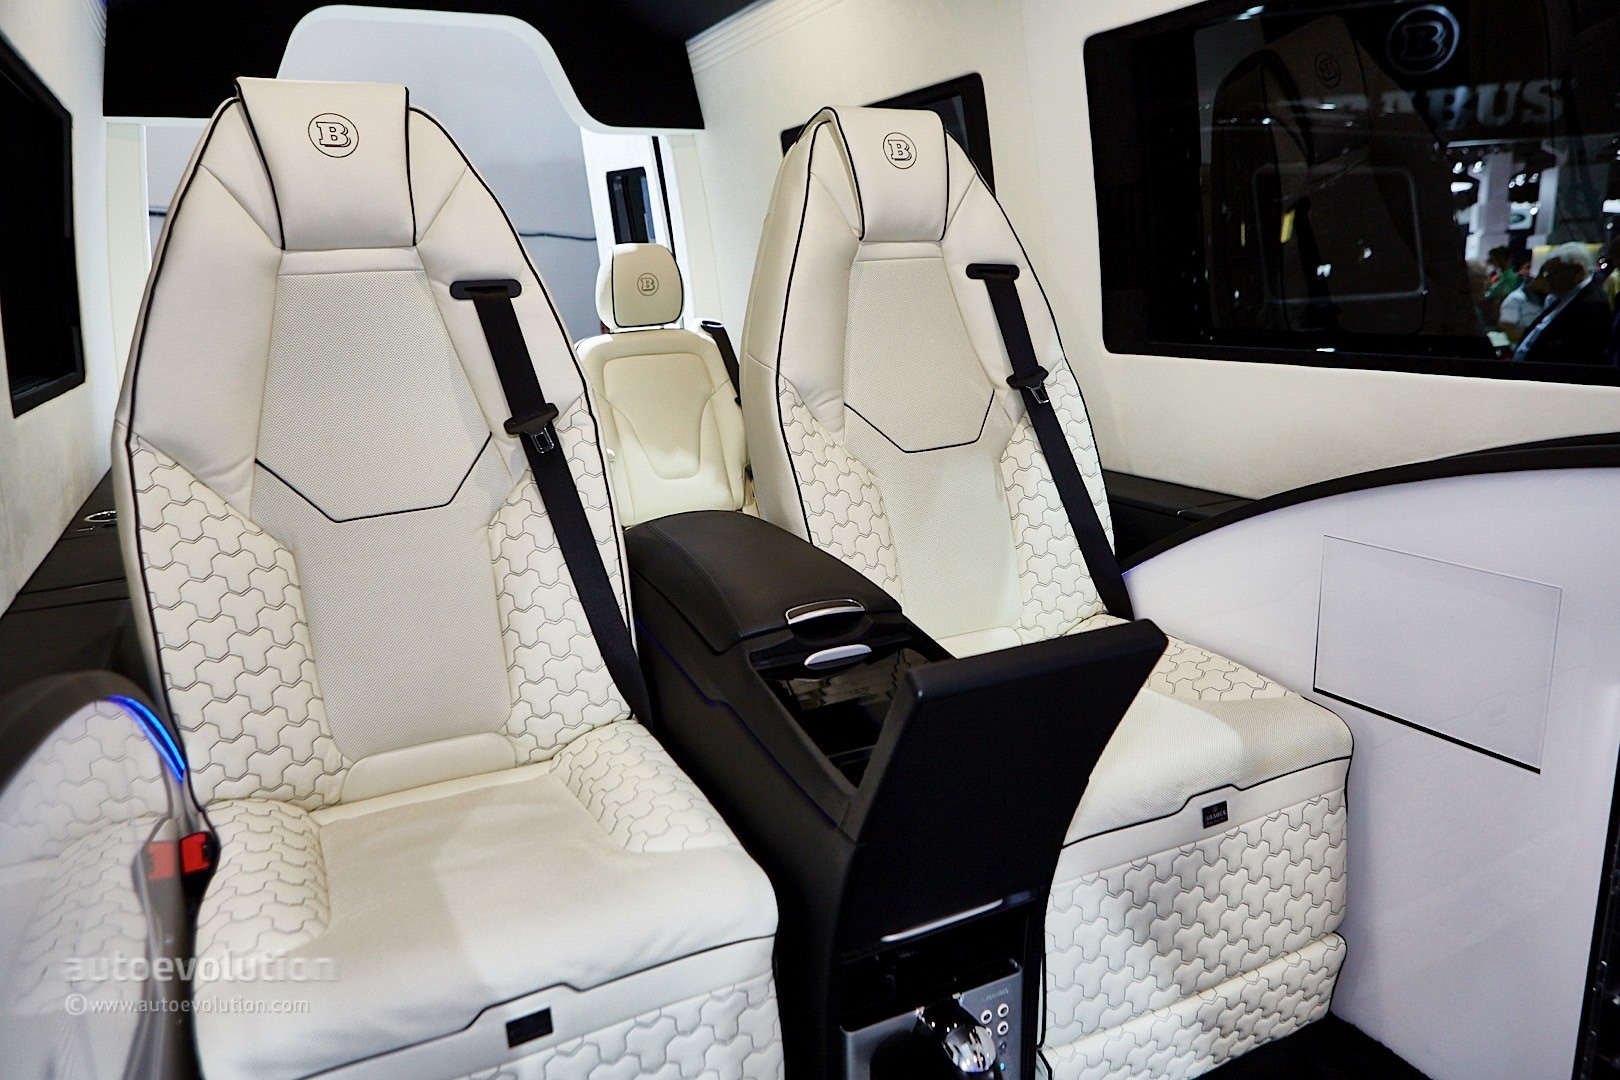 ' ' from the web at 'http://s1.cdn.autoevolution.com/images/news/gallery/brabus-sprinter-and-v-class-fill-the-luxury-van-gap-in-frankfurt-live-photos_14.jpg'